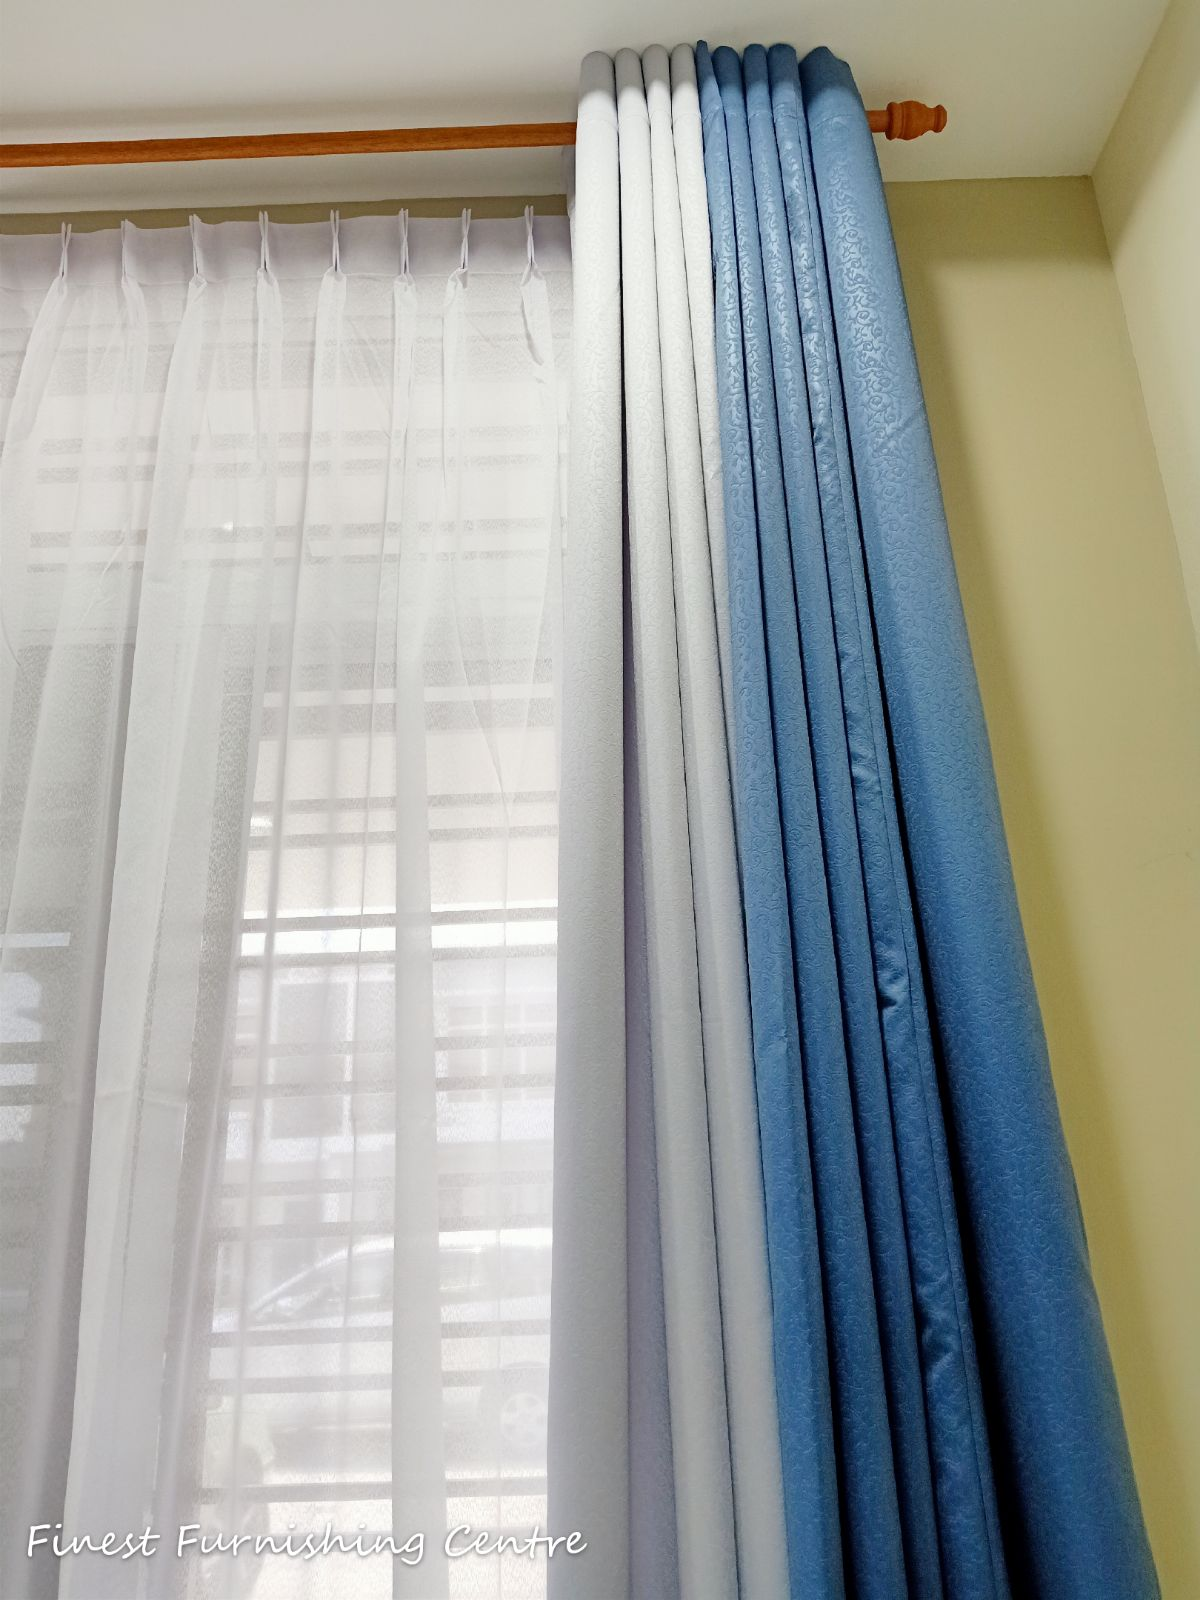 Curtain Eyelet -Rini Homes, Skudai jb